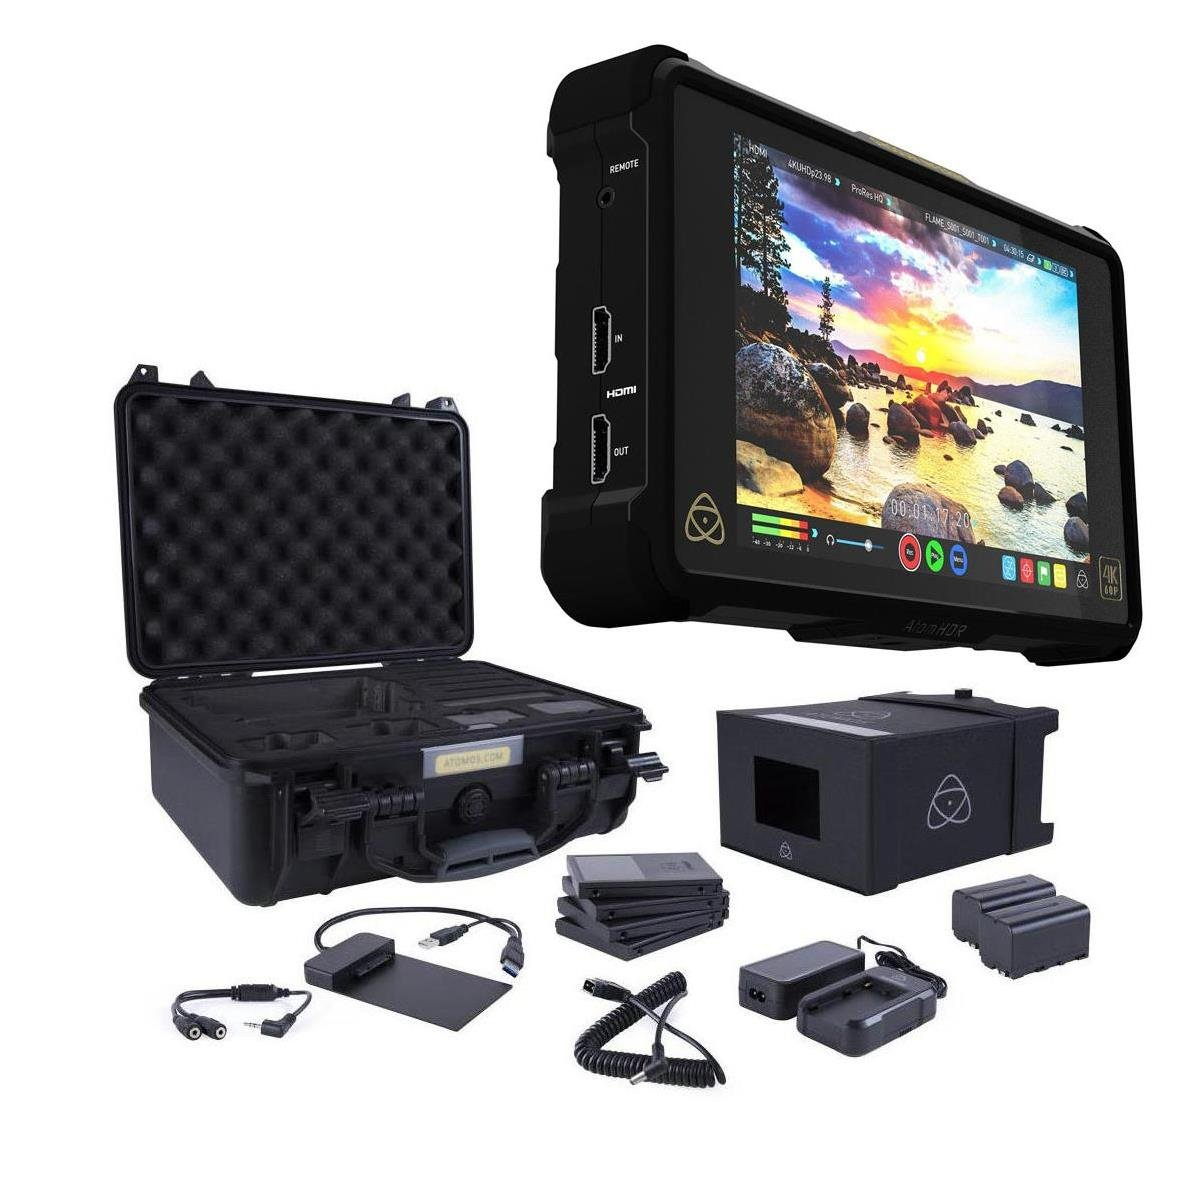 """Atomos Shogun Inferno 7"""" with Accessories Kit - Includes 2X Batteries with Fast Charger, 4X Master Caddies, Docking Station, HDR Sunhood, Power Supply, Control Cable, and Hard Case"""